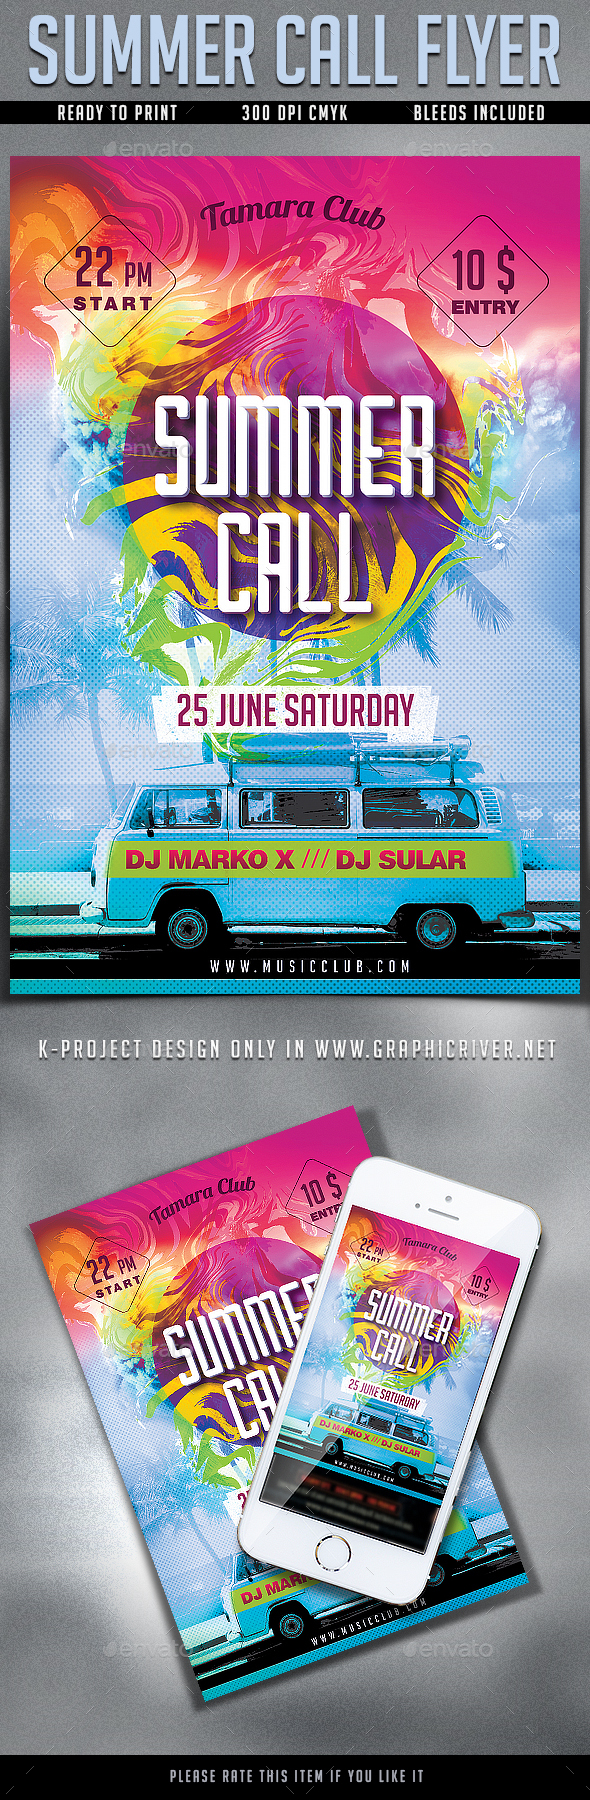 Summer Call Party Flyer - Clubs & Parties Events